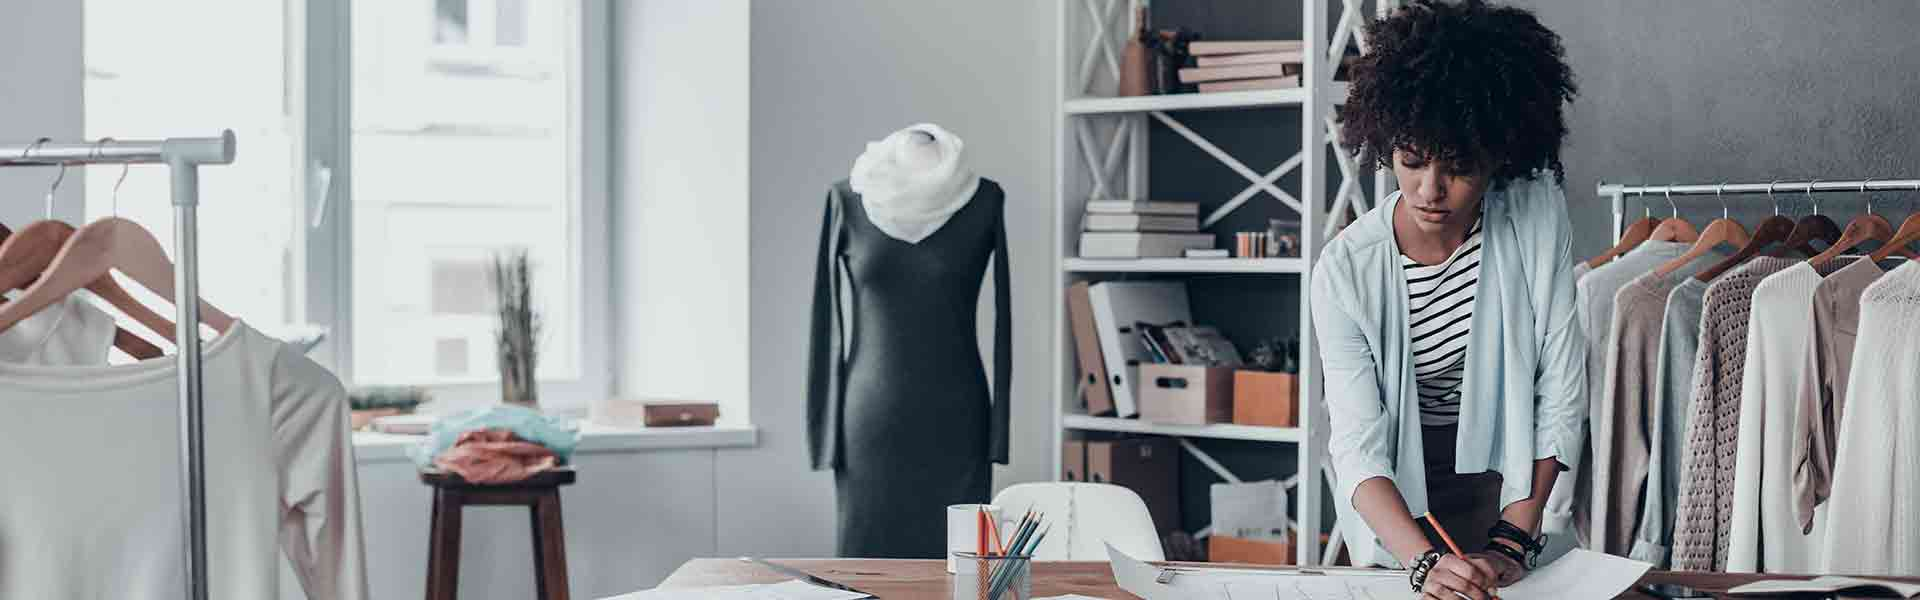 Intelligent Fashion: How Technology has Infiltrated the Runways and our Closets